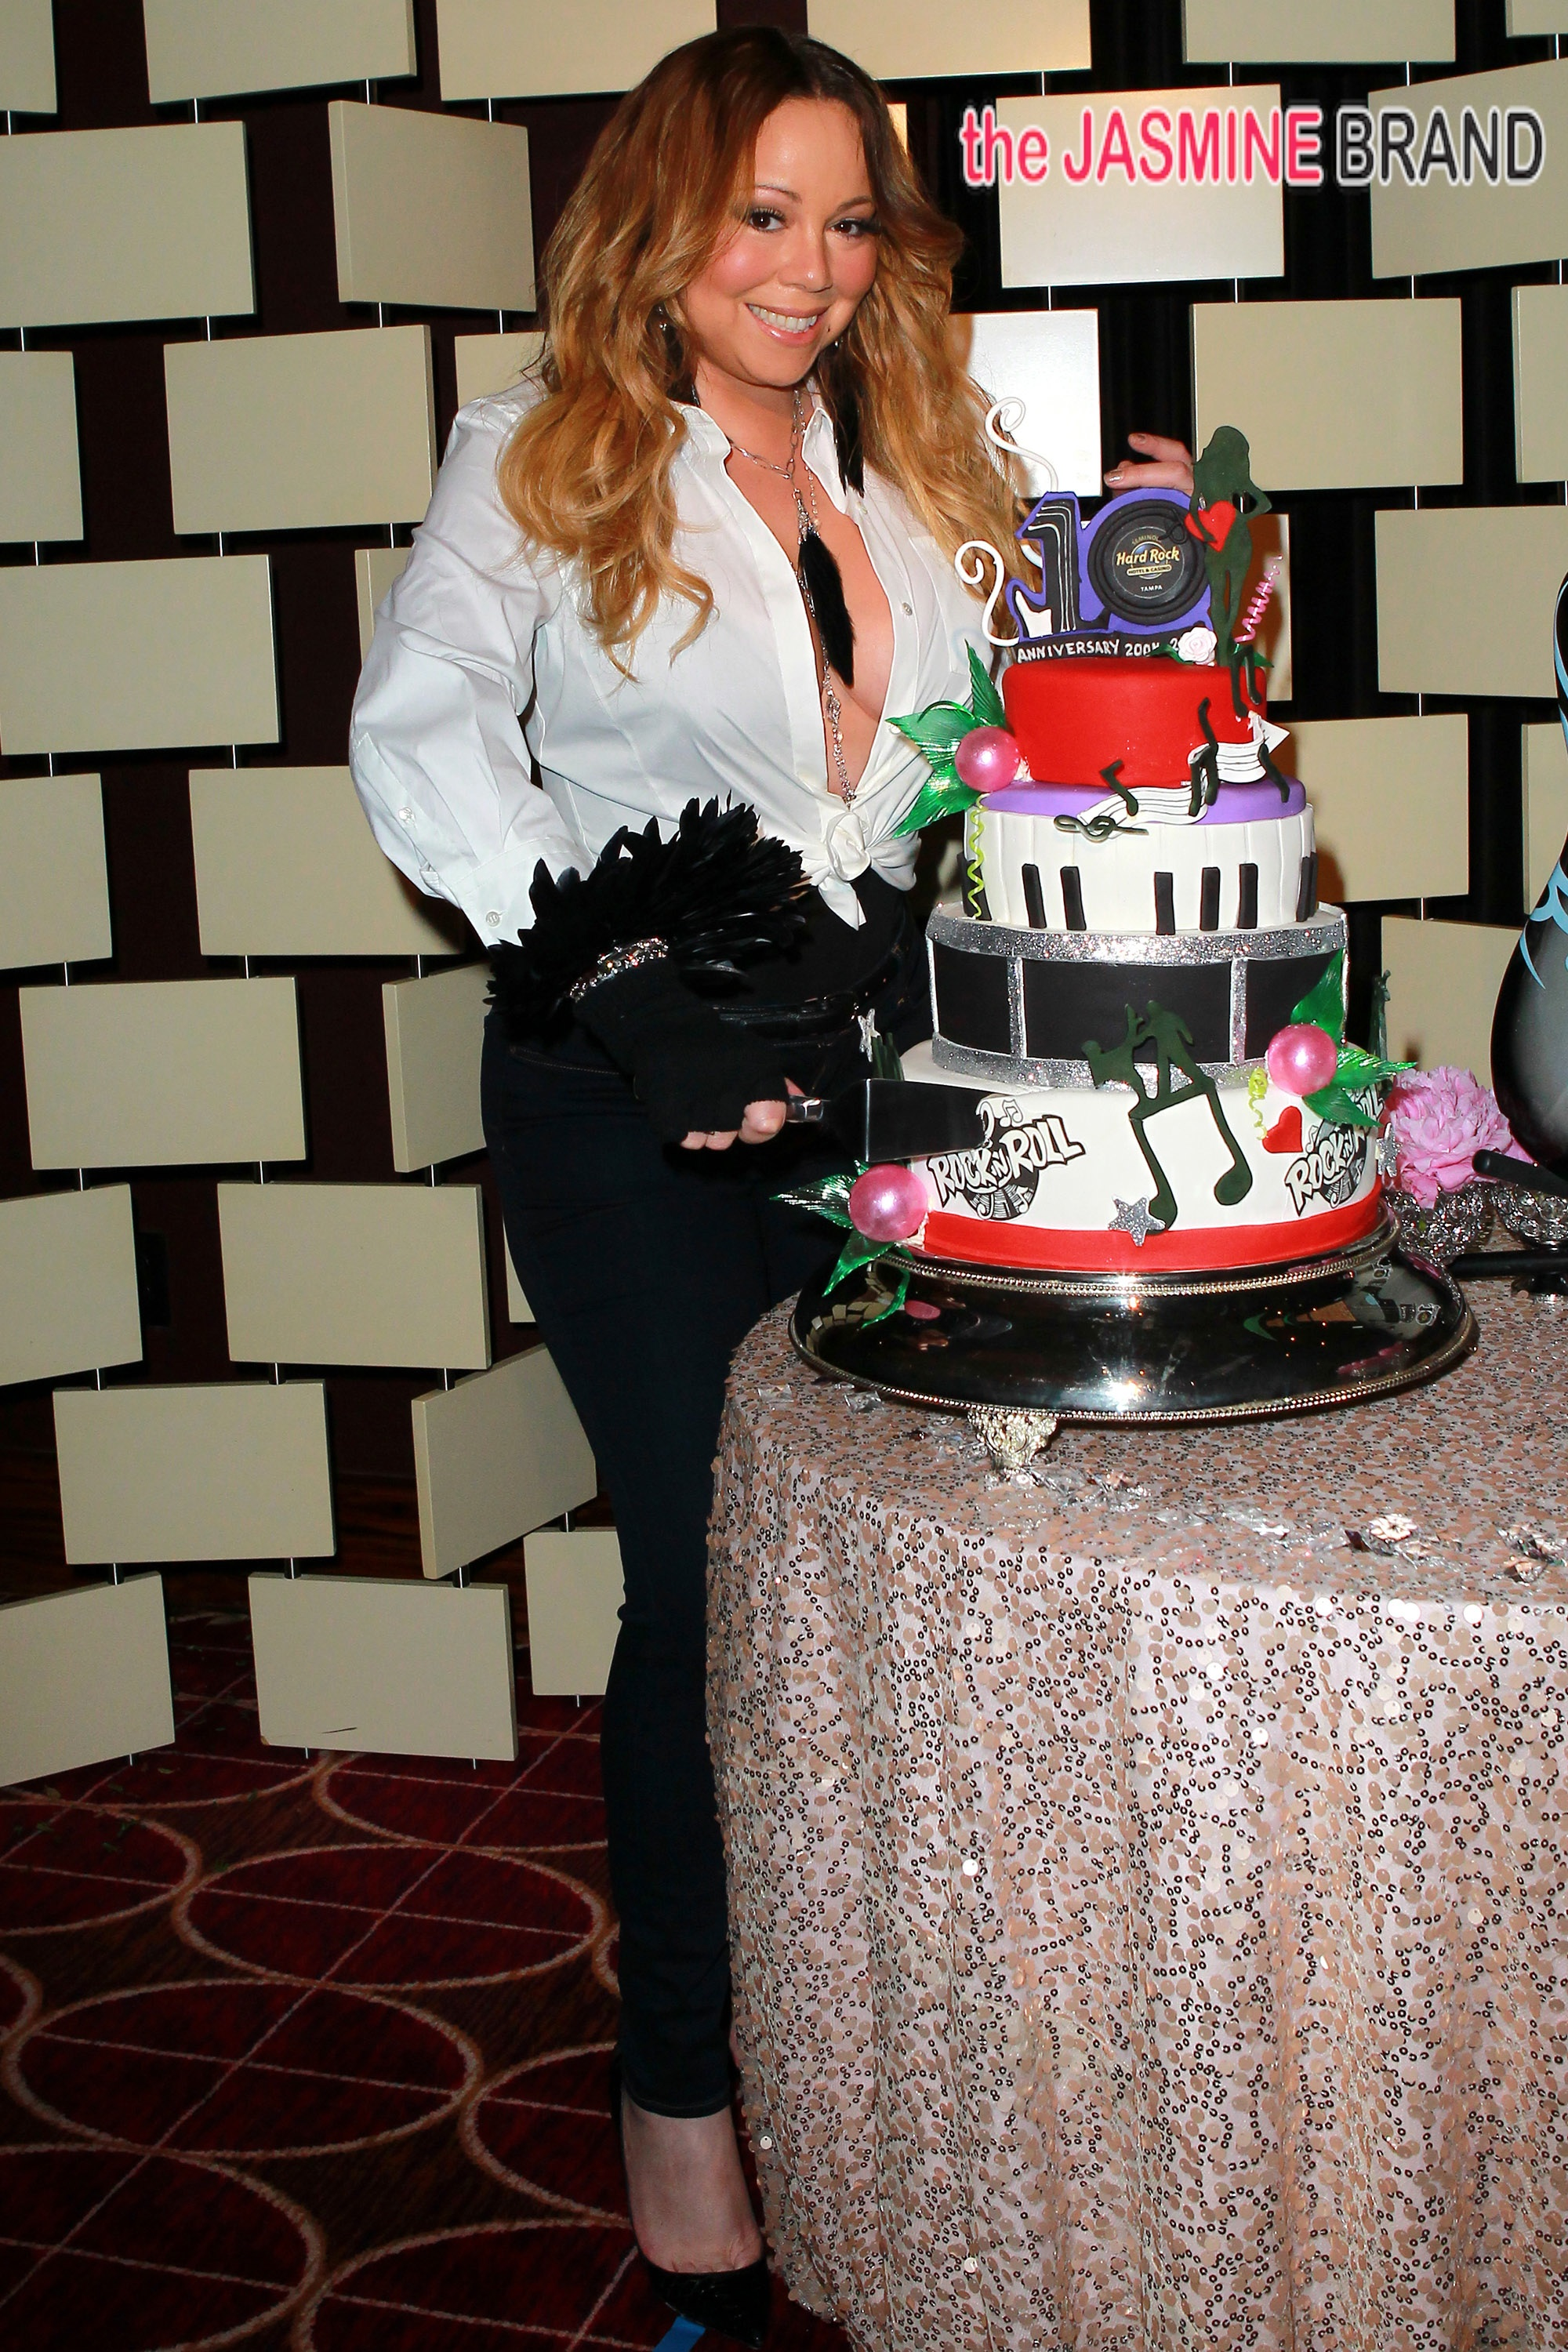 Mariah Carey stopped by Seminole Hard Rock Hotel & Casino Tampa to help celebrate the property's 10th anniversary